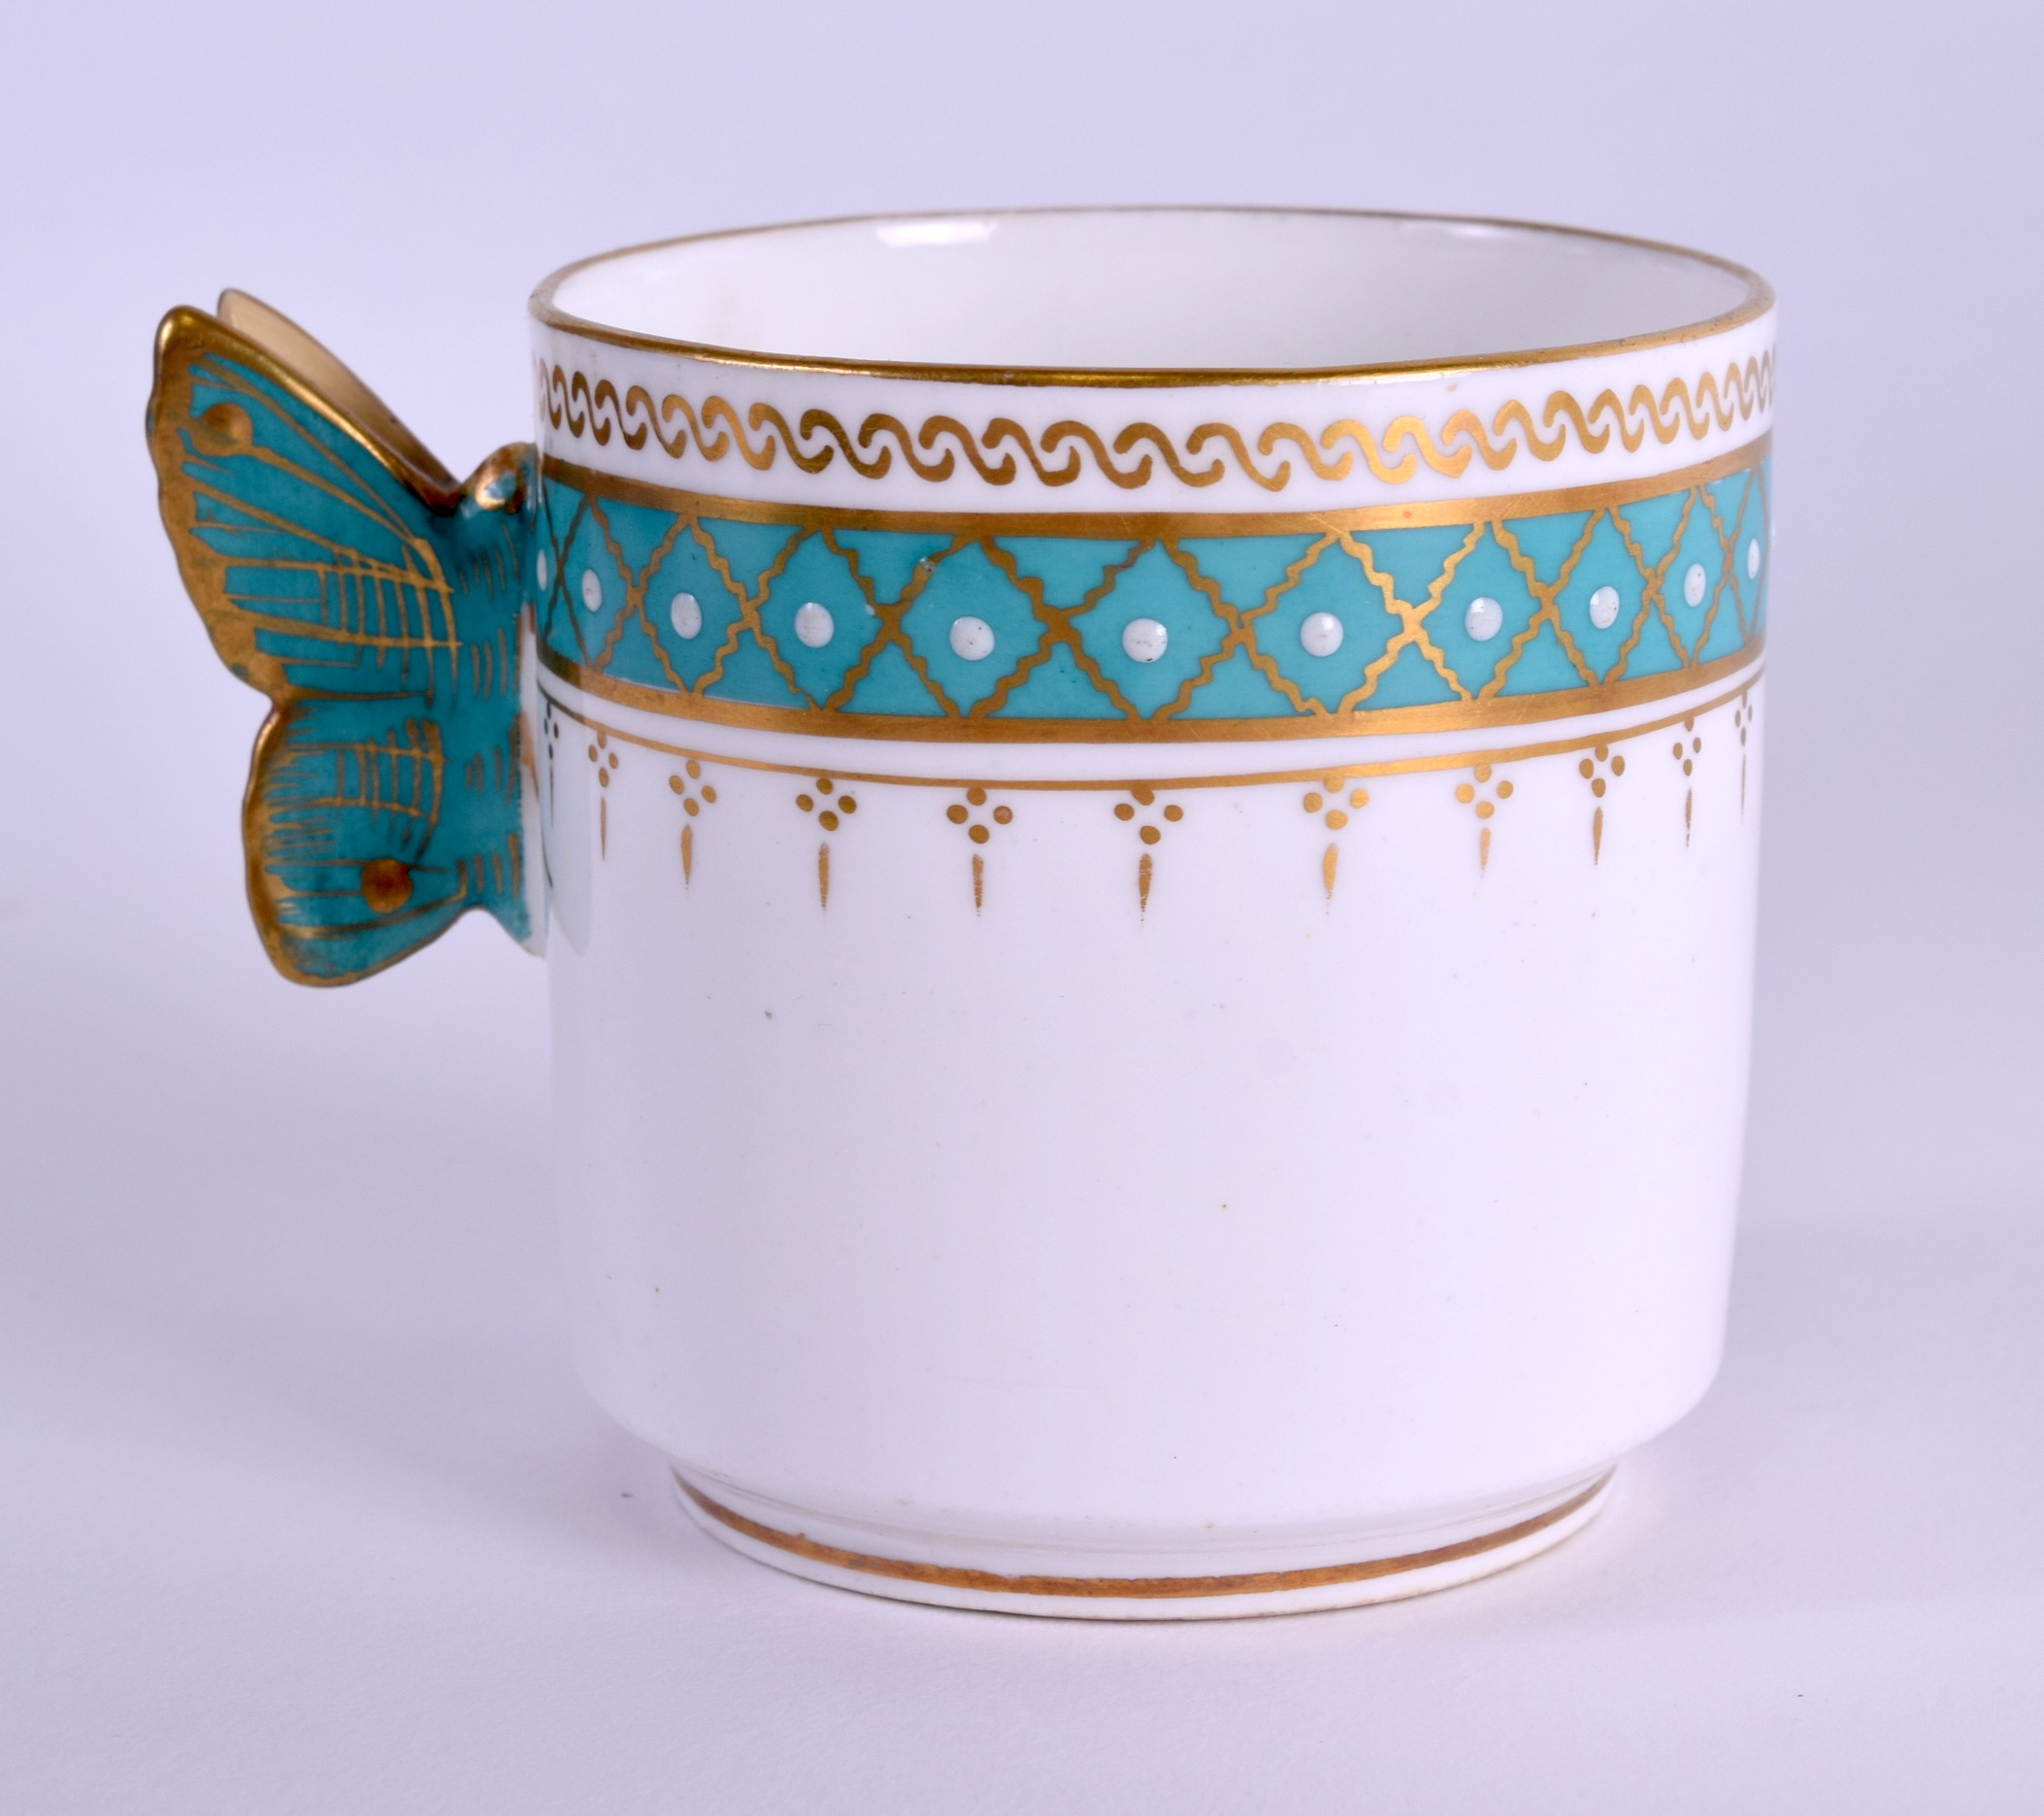 Lot 100 - A LATE 19TH CENTURY ENGLISH AESTHETIC MOVEMENT CUP AND SAUCER Attributed to Minton or Bodley, set